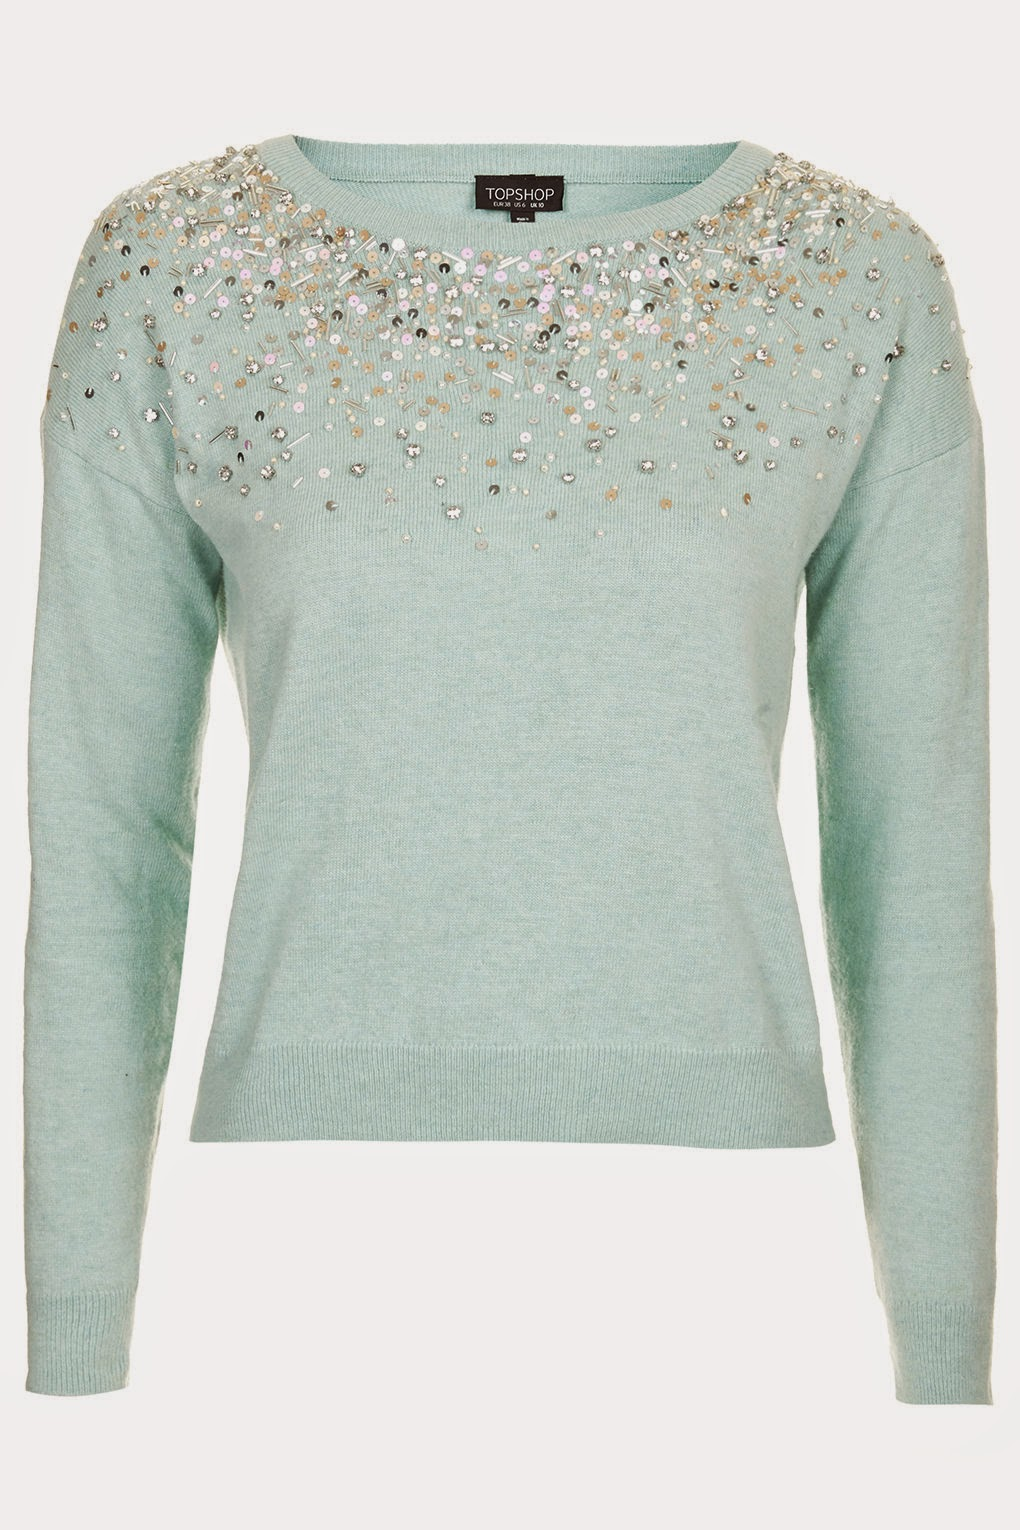 mint green jumper with sequins, sequin pastel jumper,